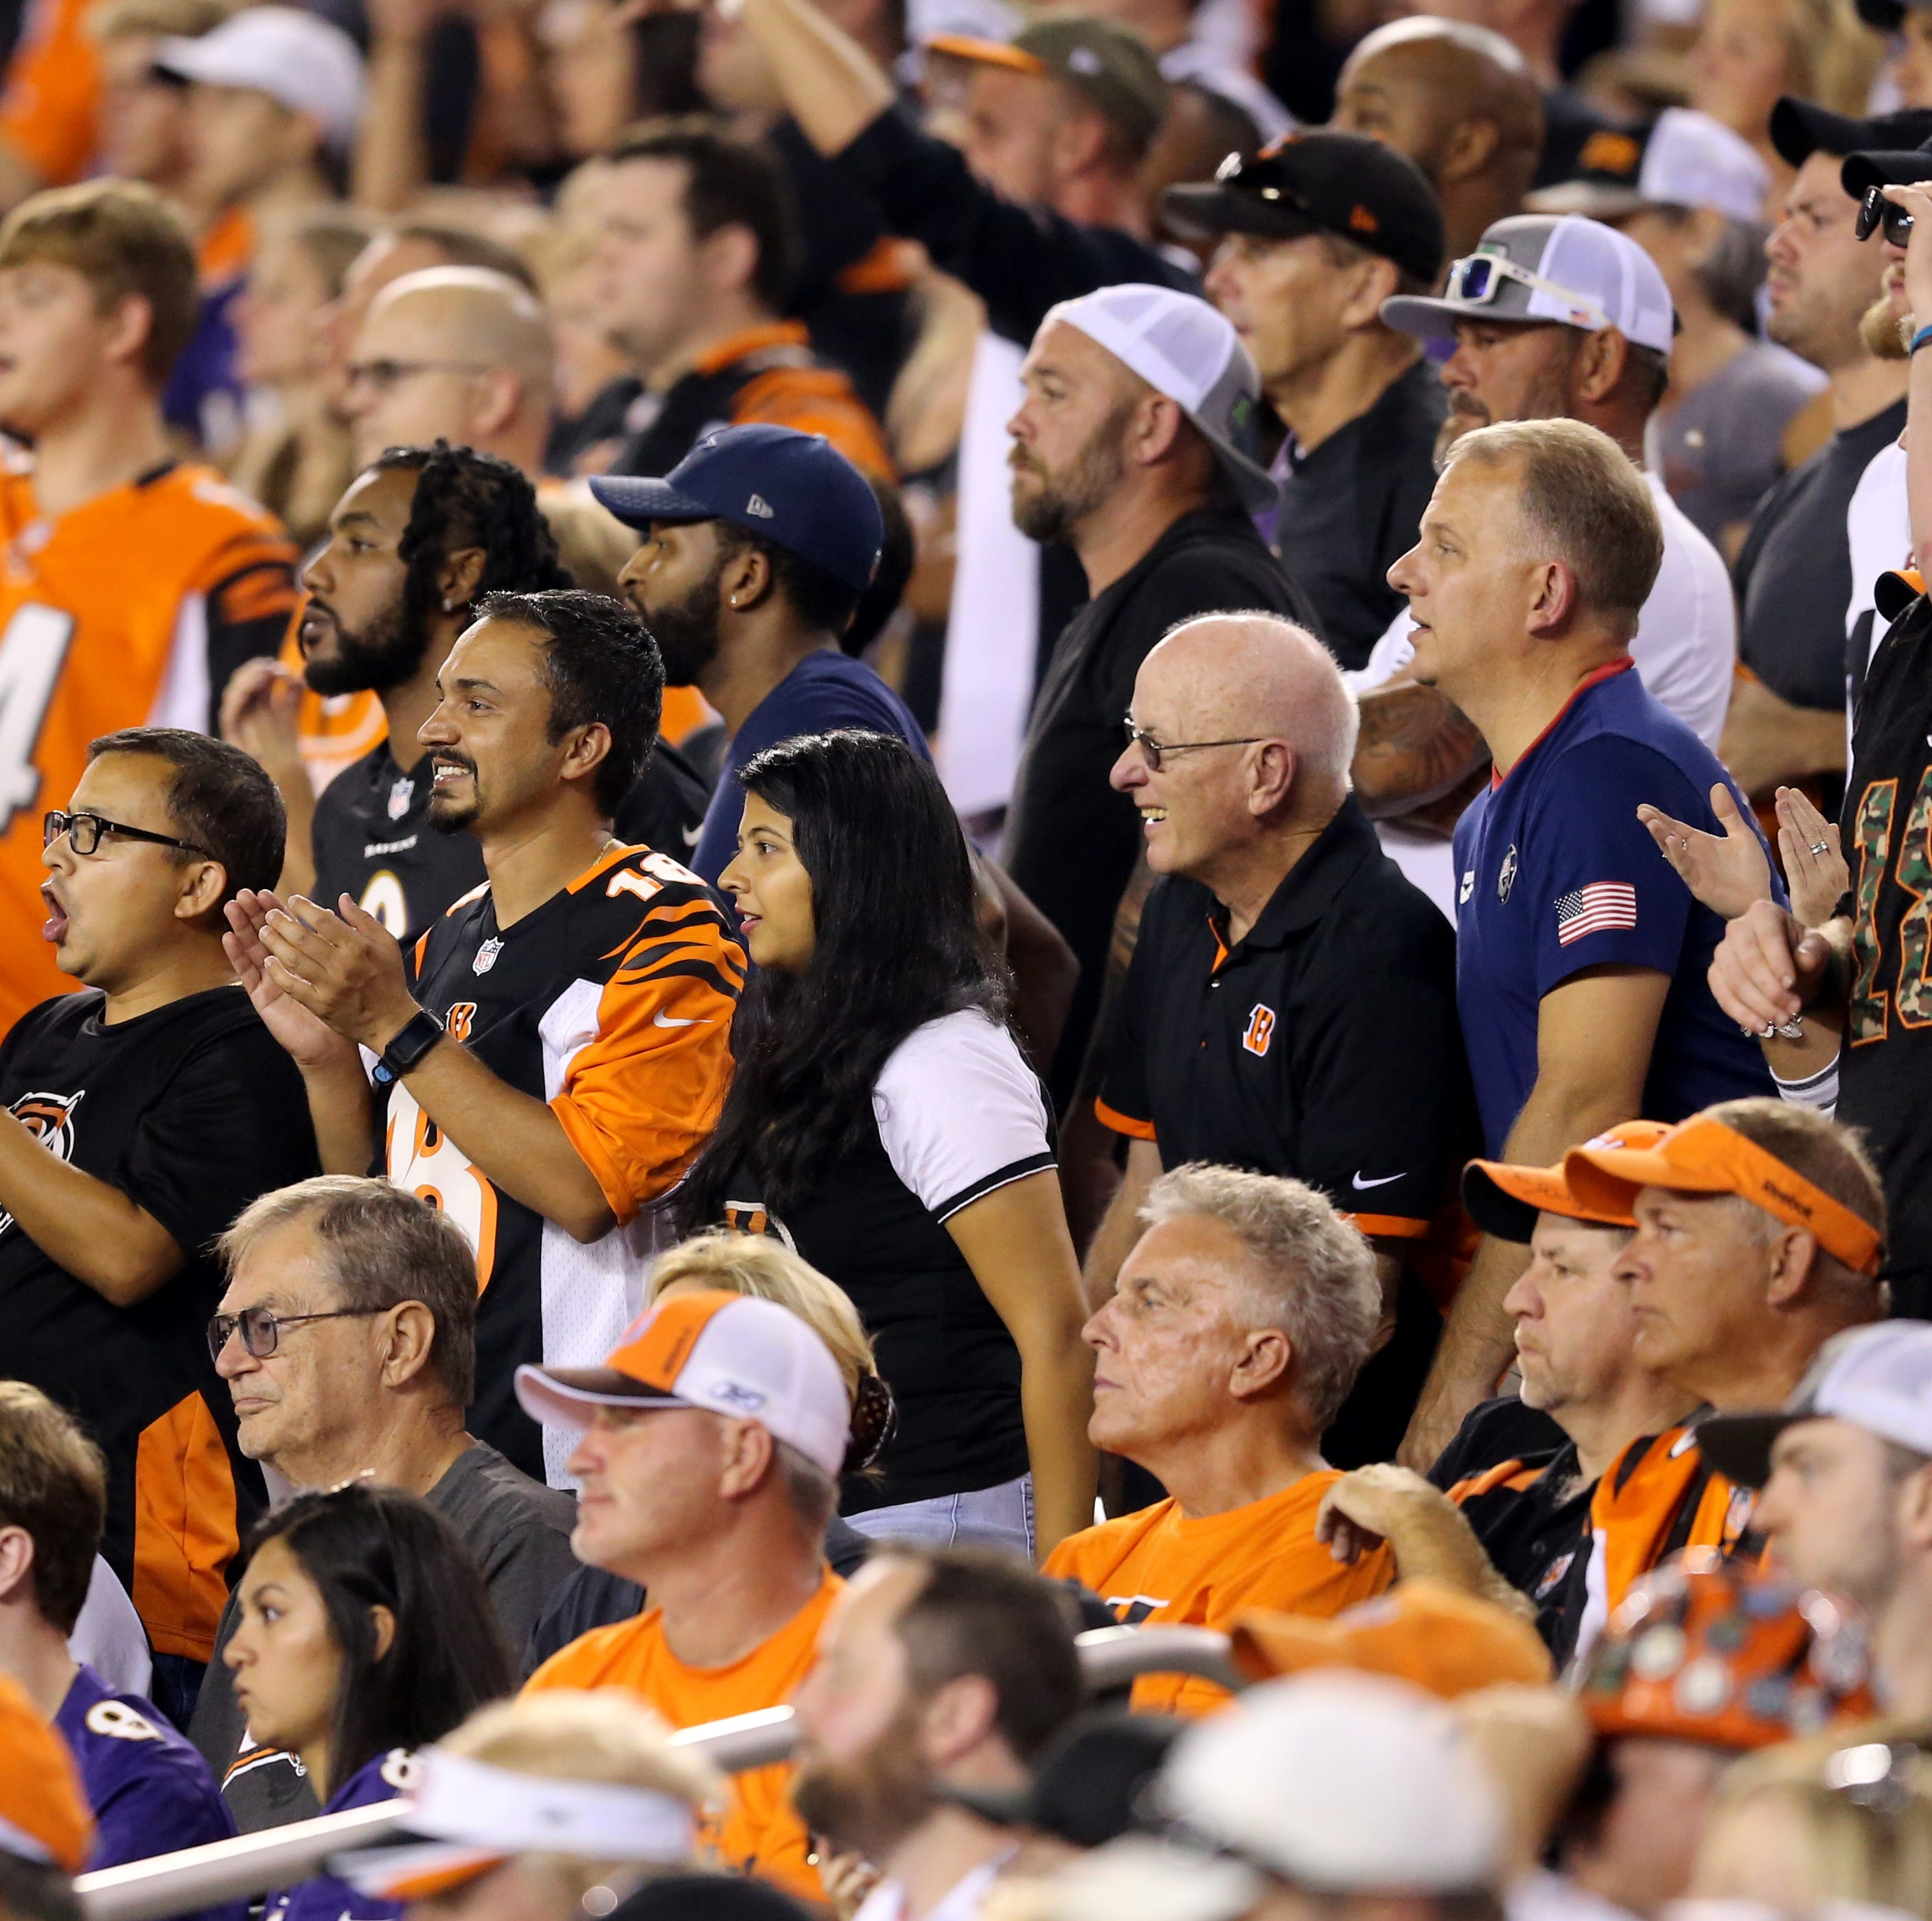 'Who Dey' vs. 'Who Dat': Barstool, Bush suggest Bengals' chant rips off New Orleans Saints